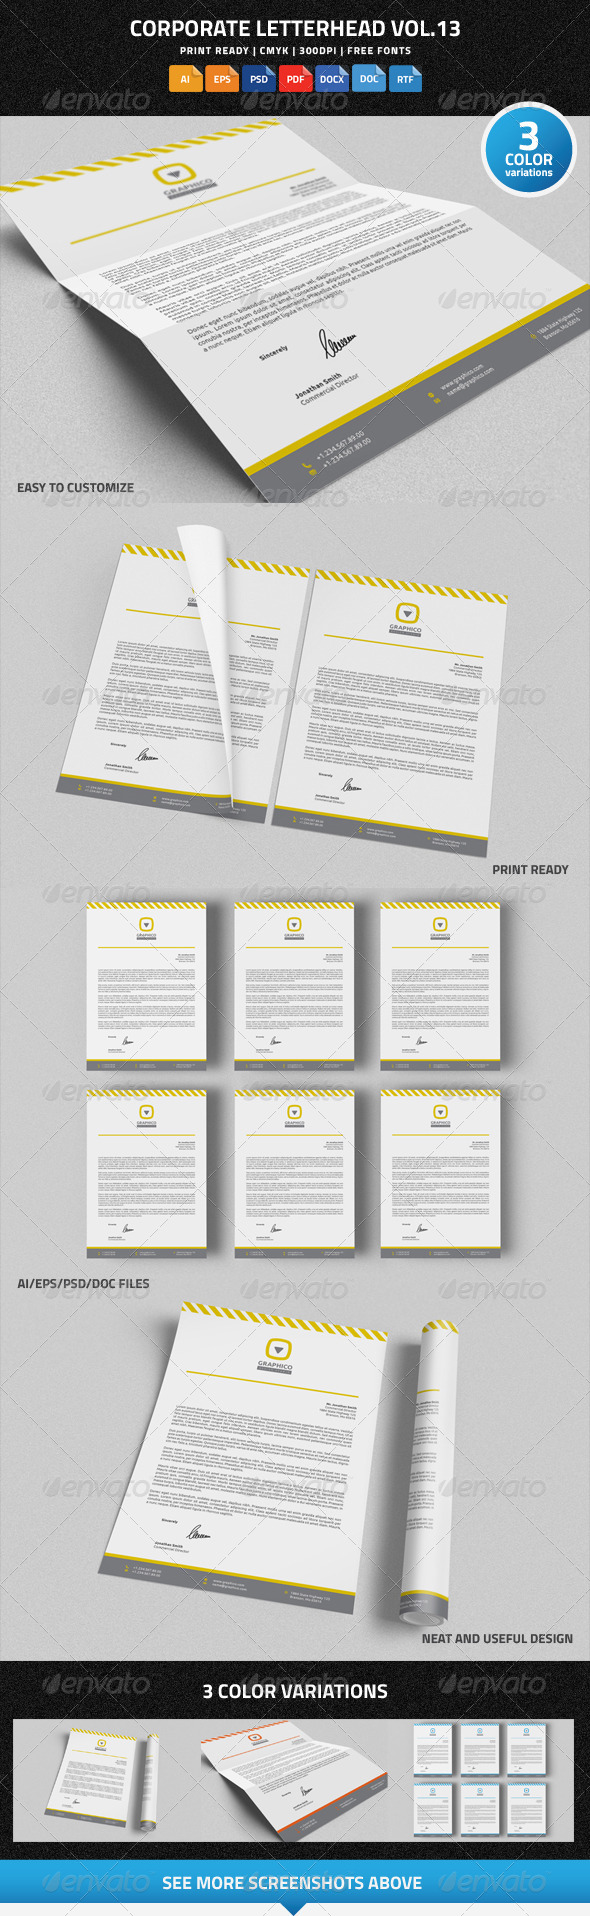 Corporate Letterhead Vol.13 with MS Word DOC DOCX